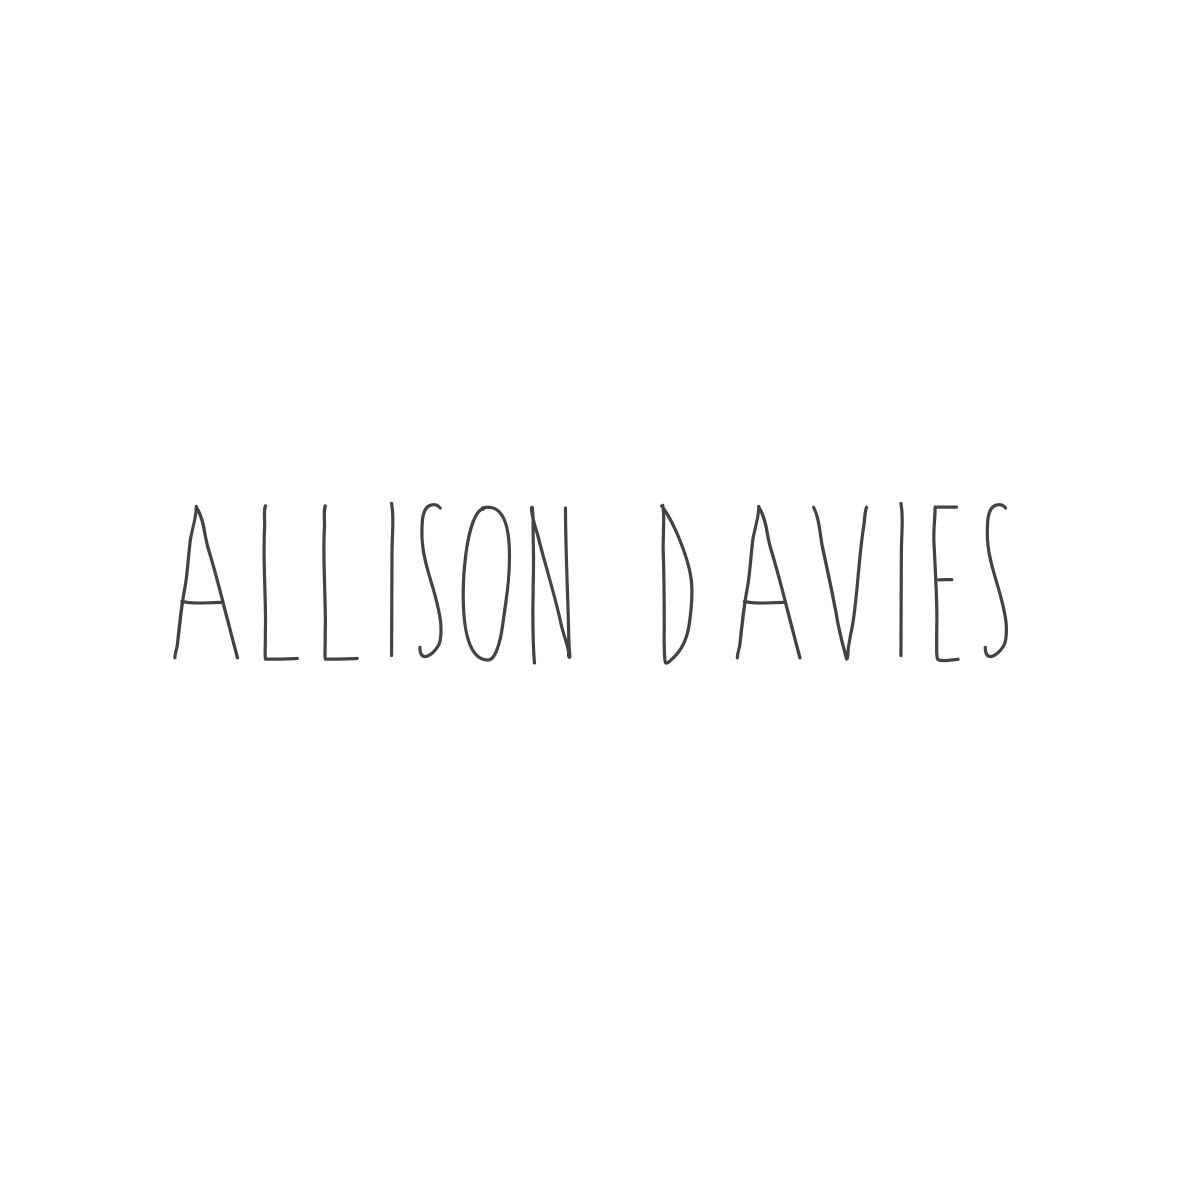 Allison Davies Logo Design by Billie Hardy Creative